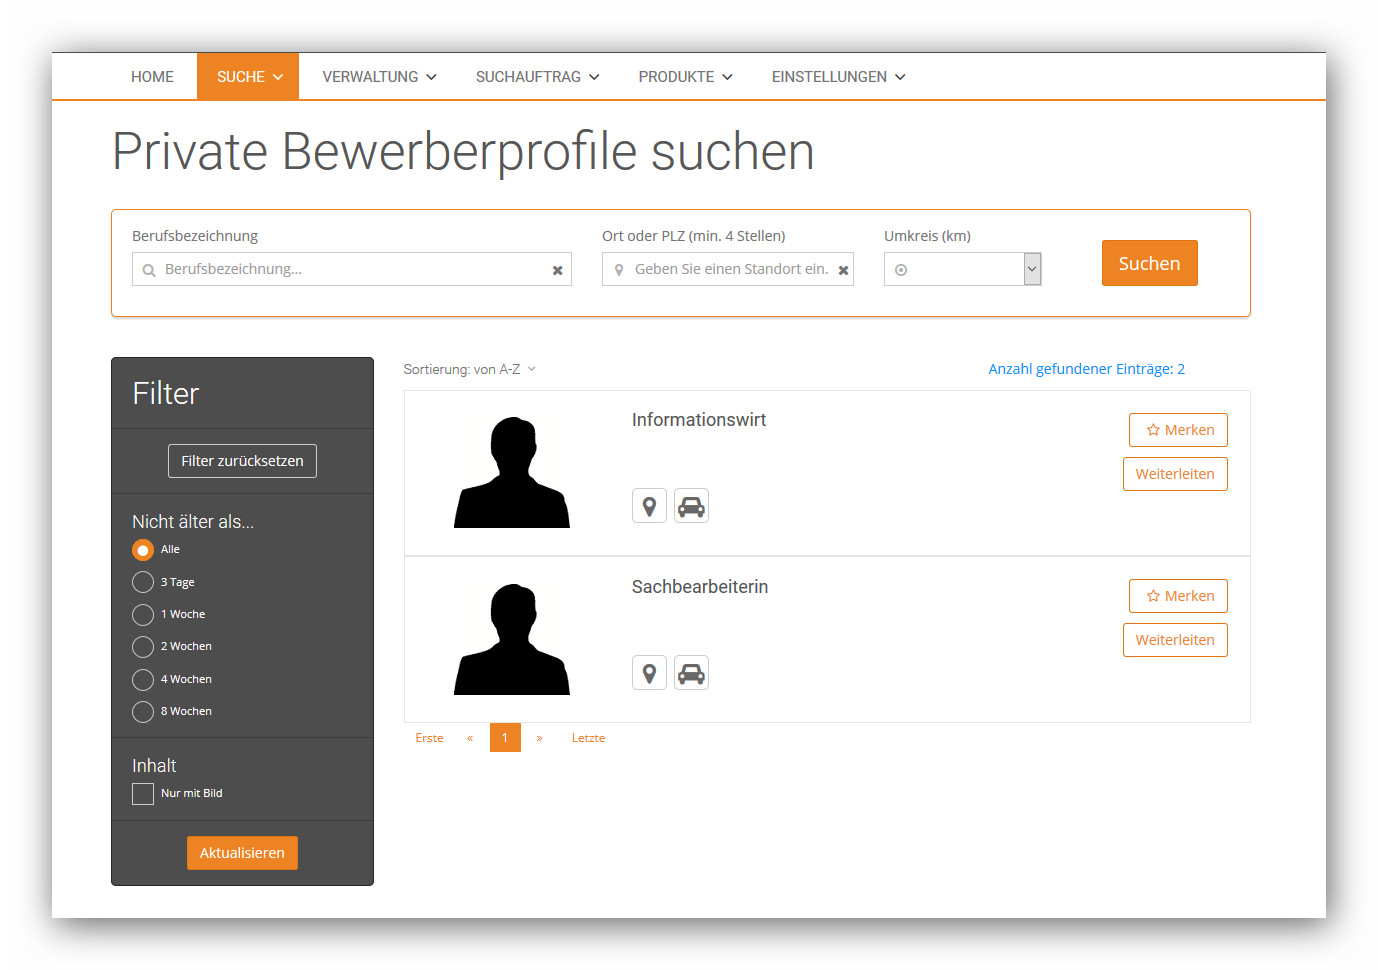 Private Bewerberprofile